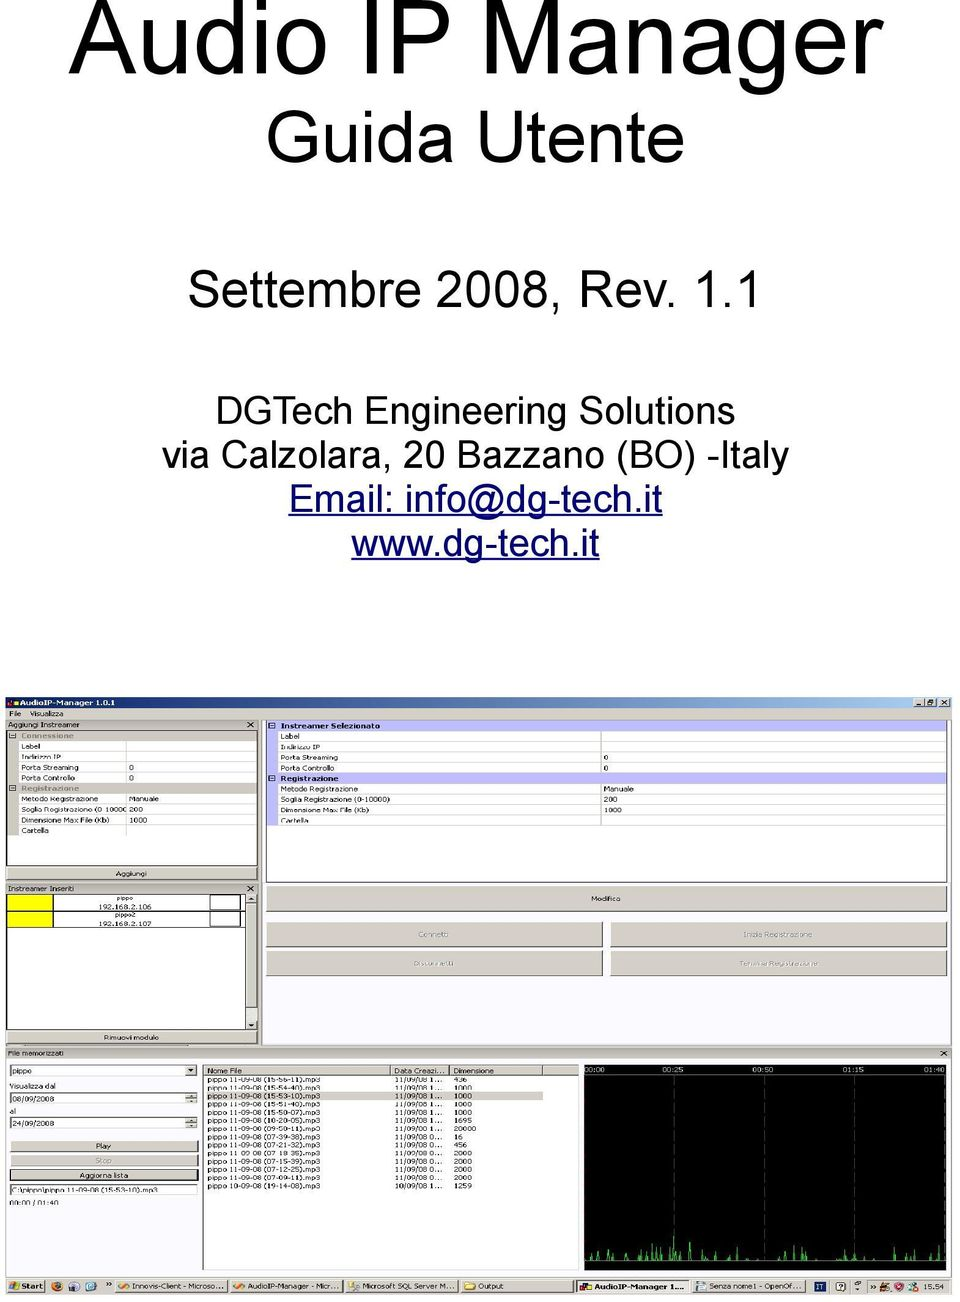 1 DGTech Engineering Solutions via